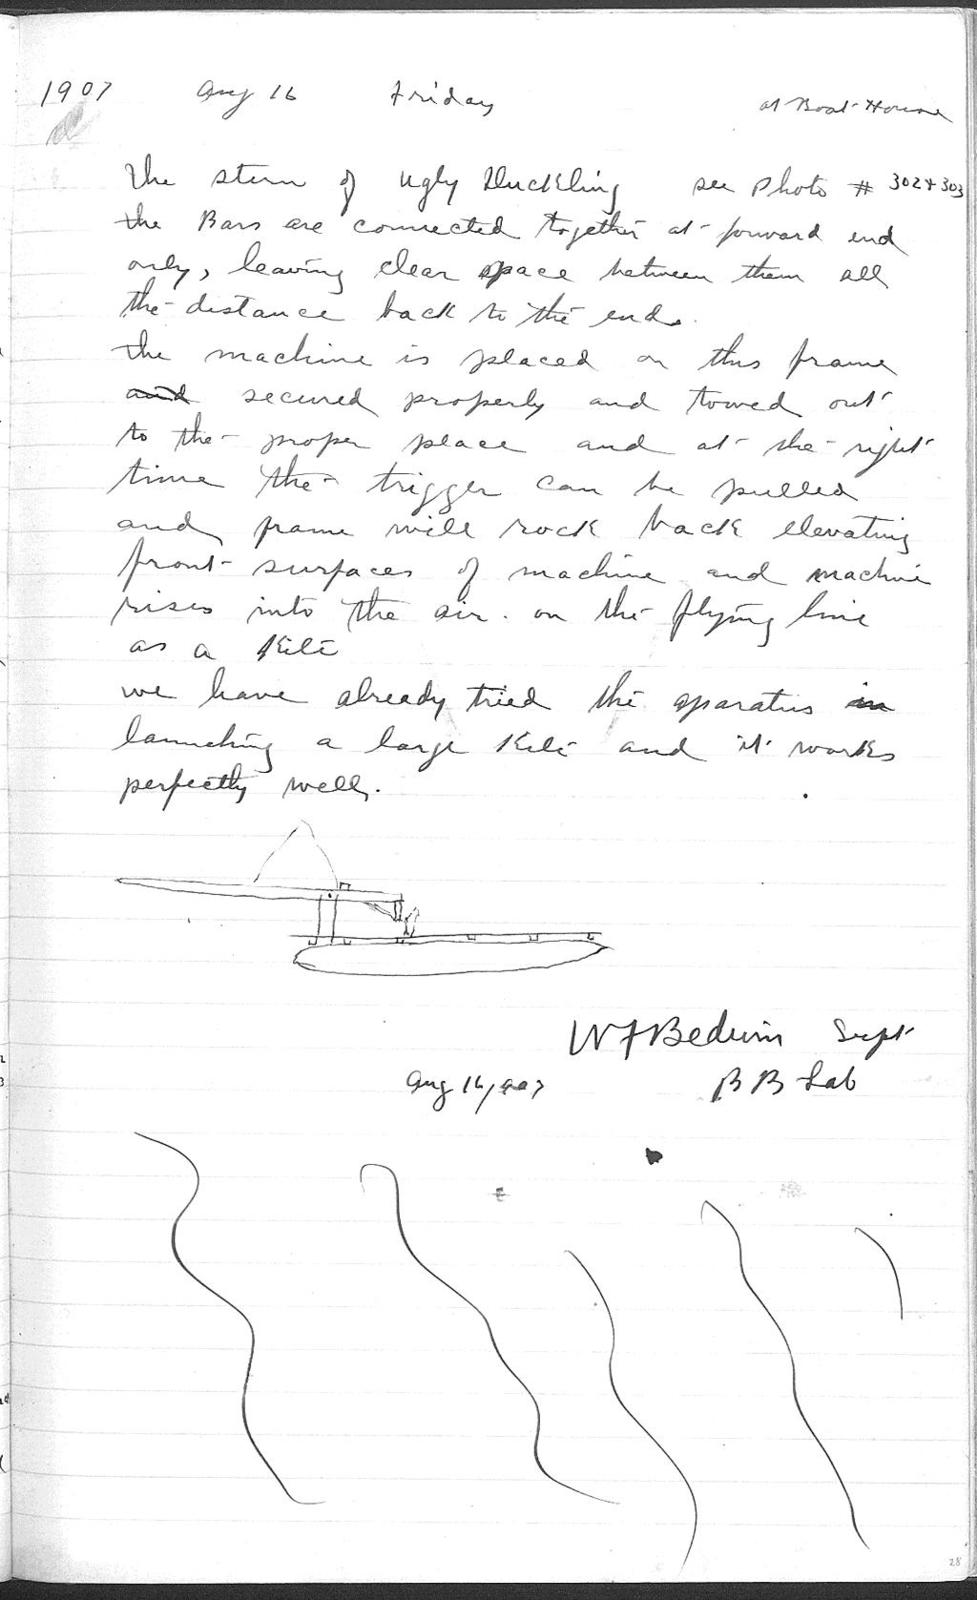 Notebook by Alexander Graham Bell and W. F. Bedwin, from June 9, 1906 to November 8, 1907